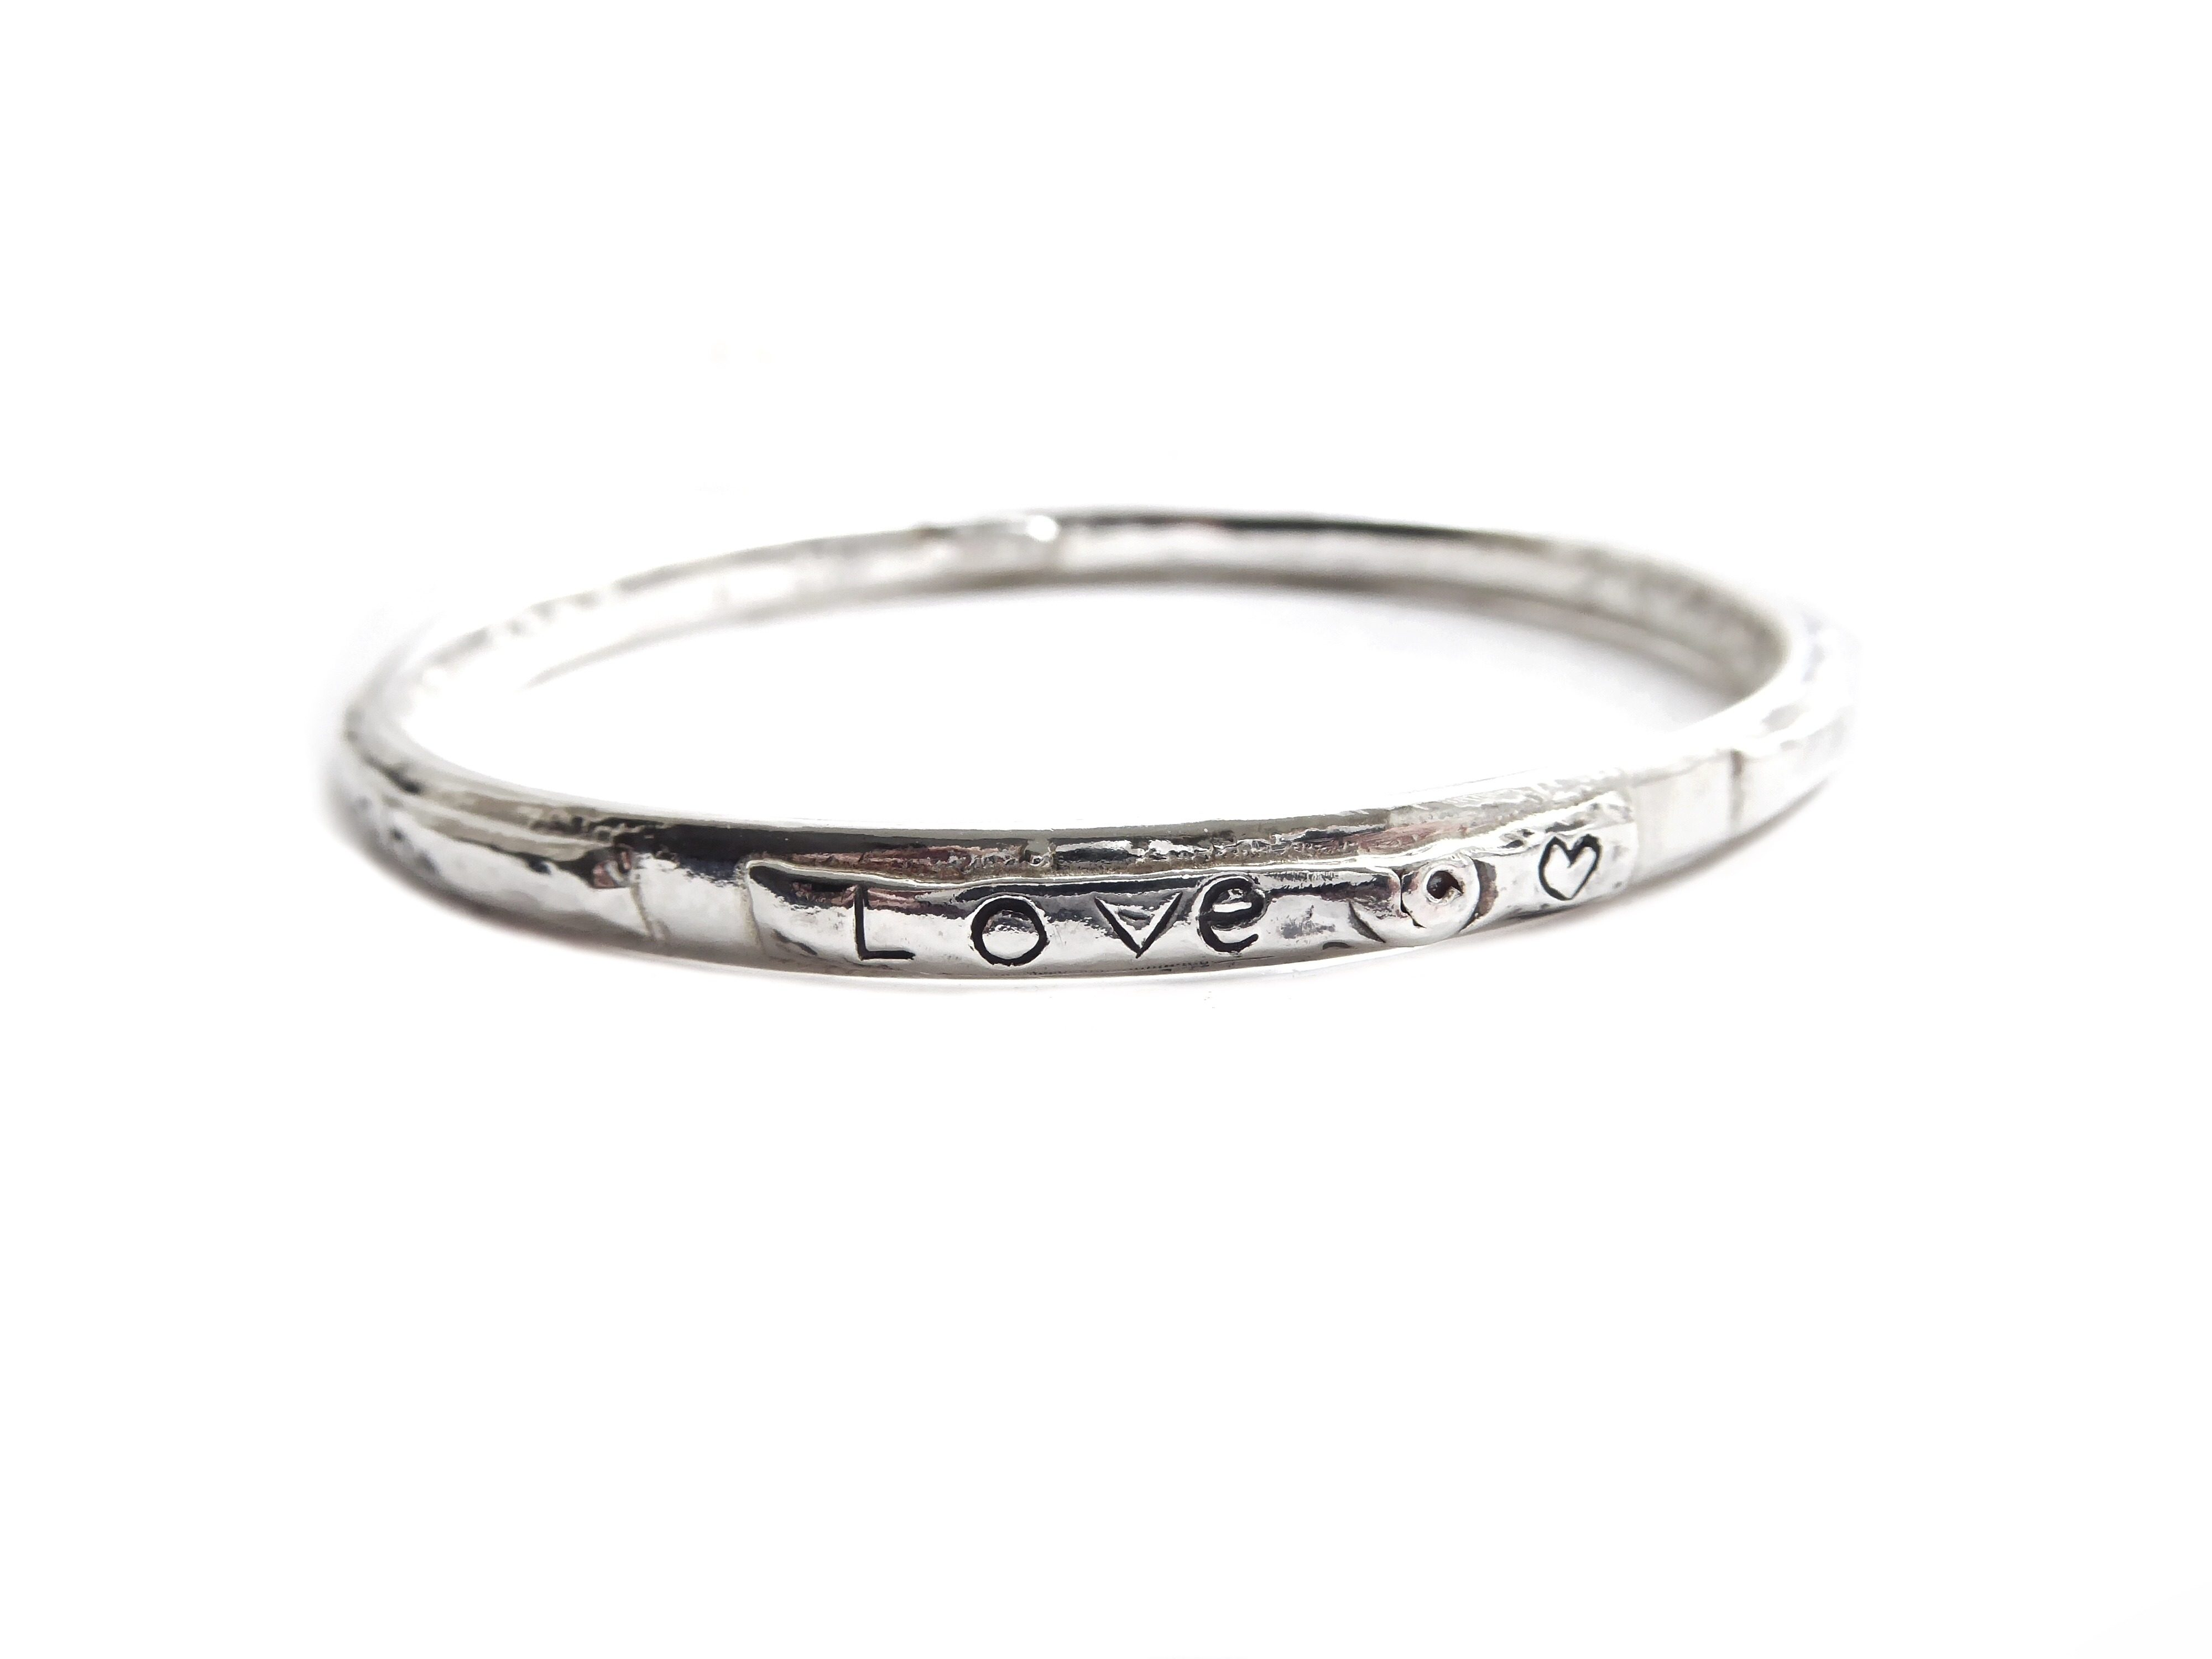 Handmade Sterling Silver Love Bangle